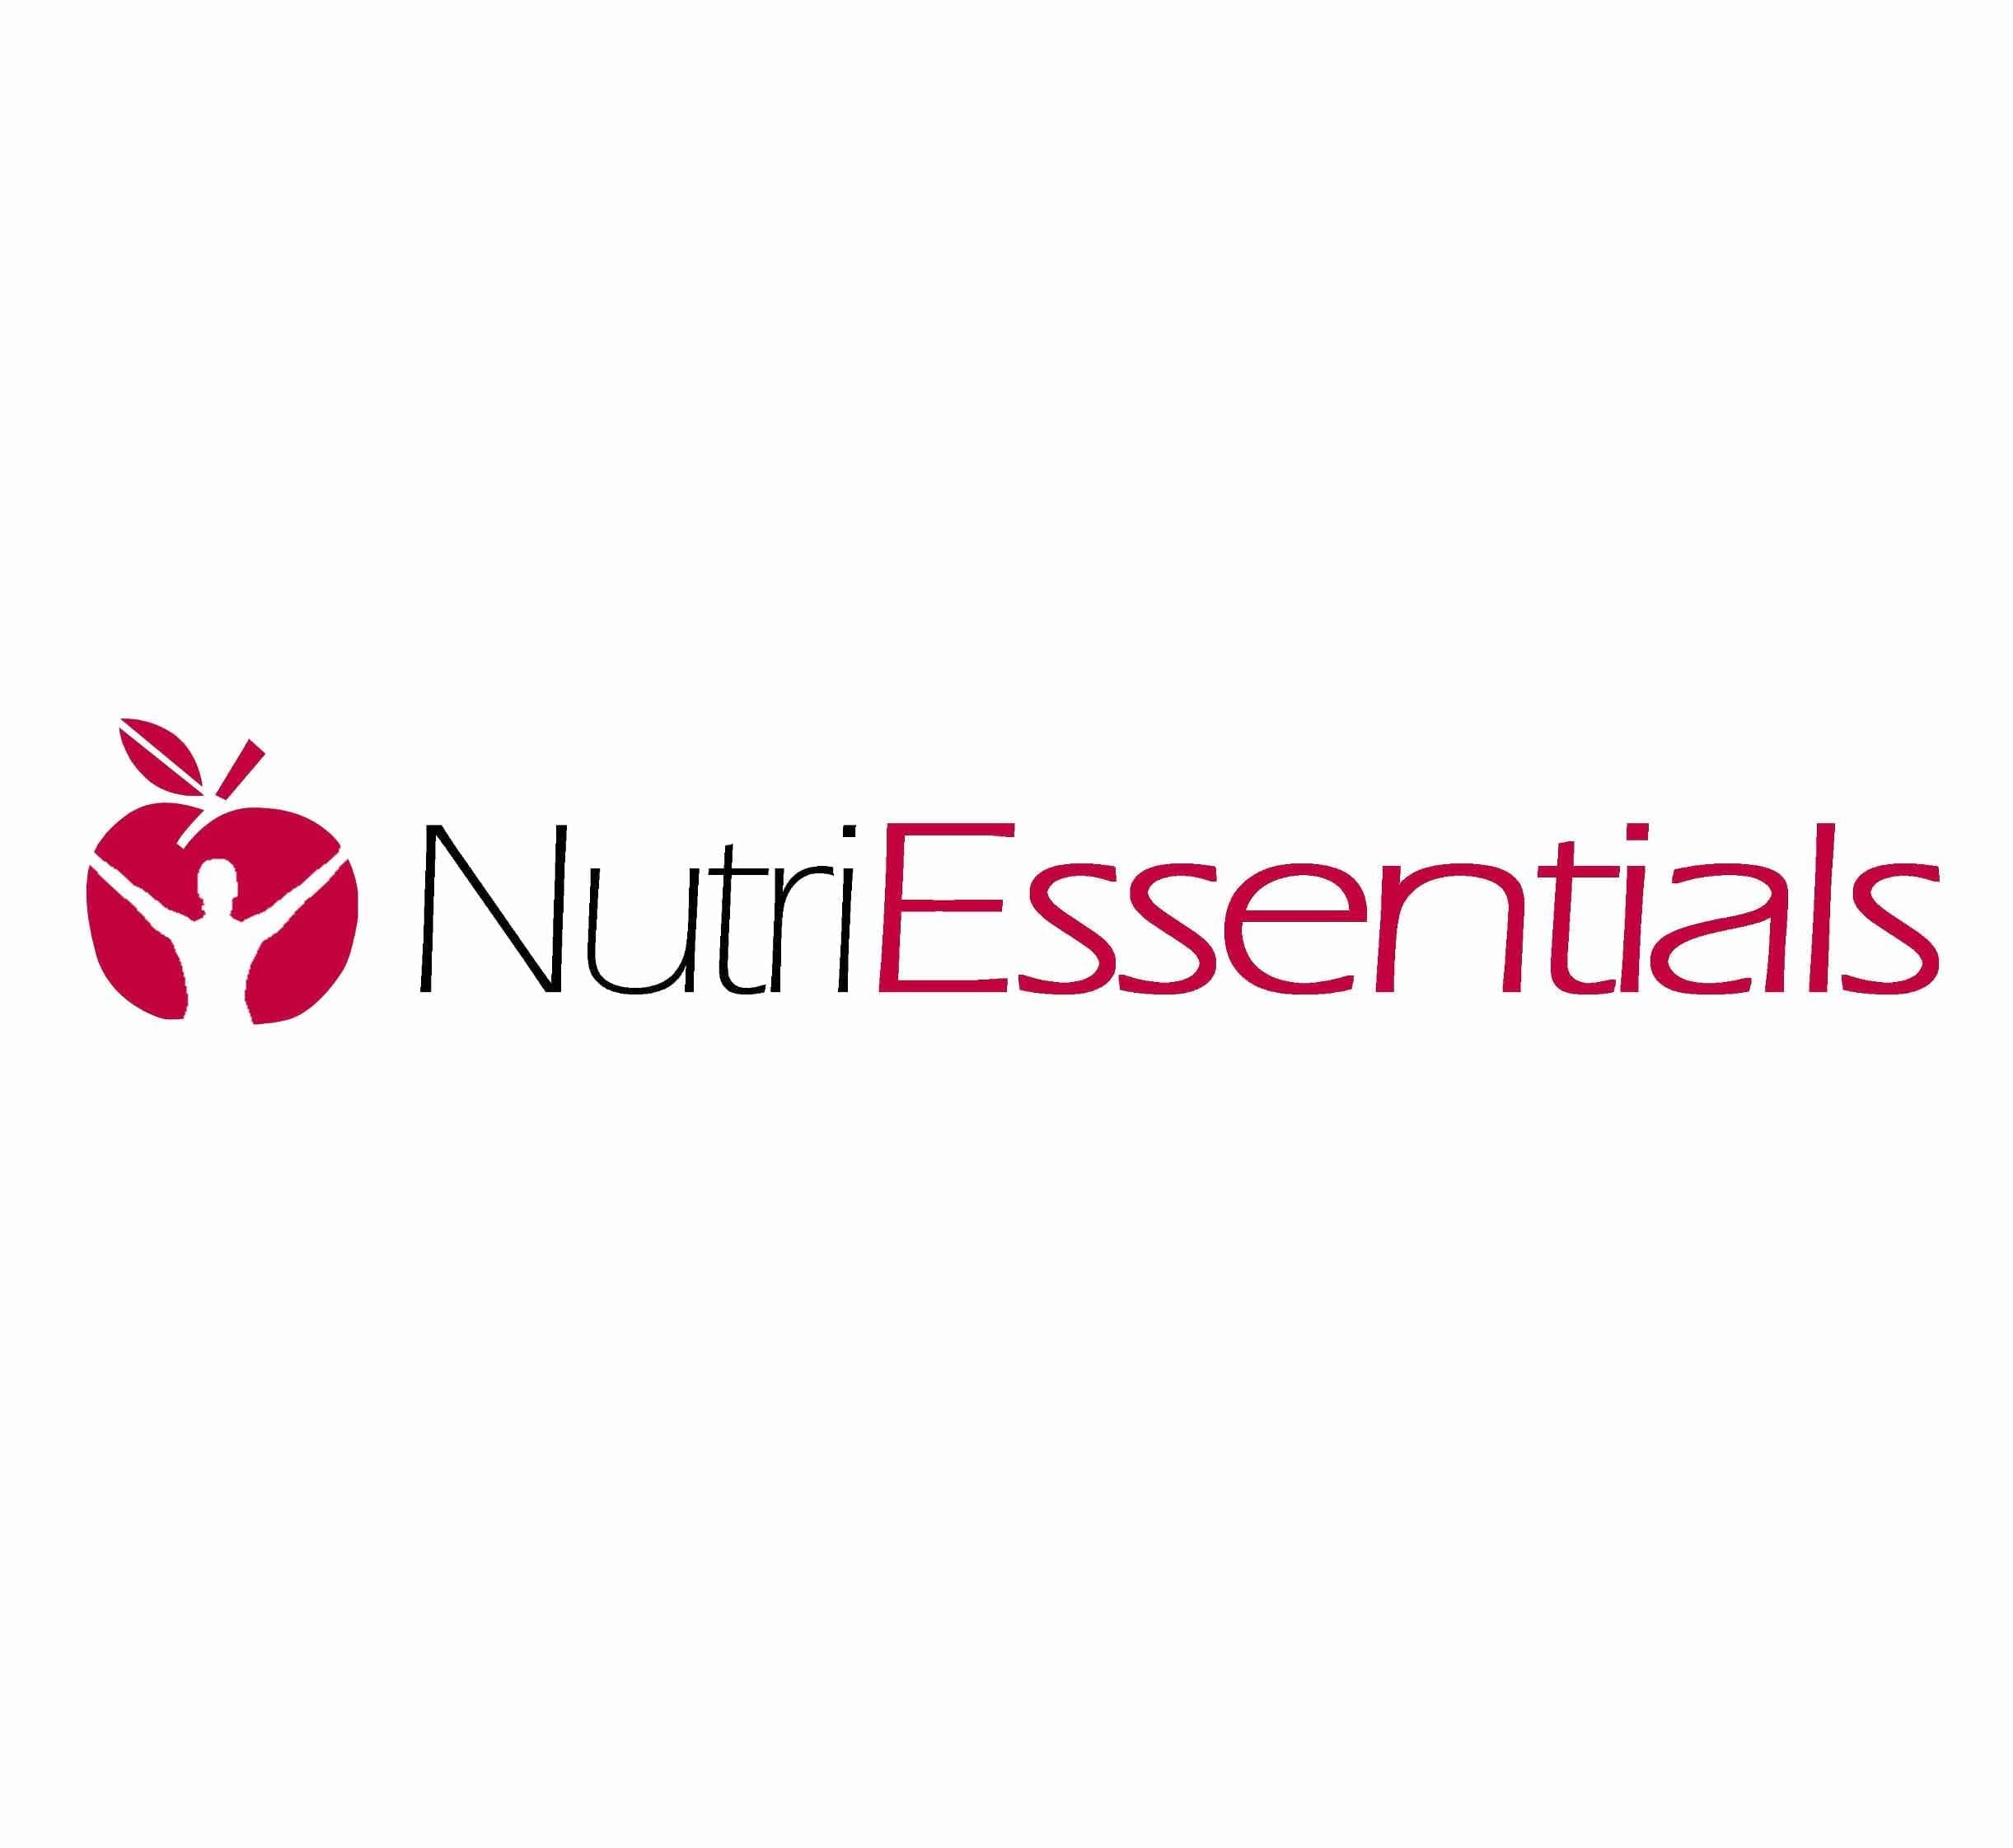 NutriEssentials, logo by New Paradigm graphic design, Santa Rosa, CA